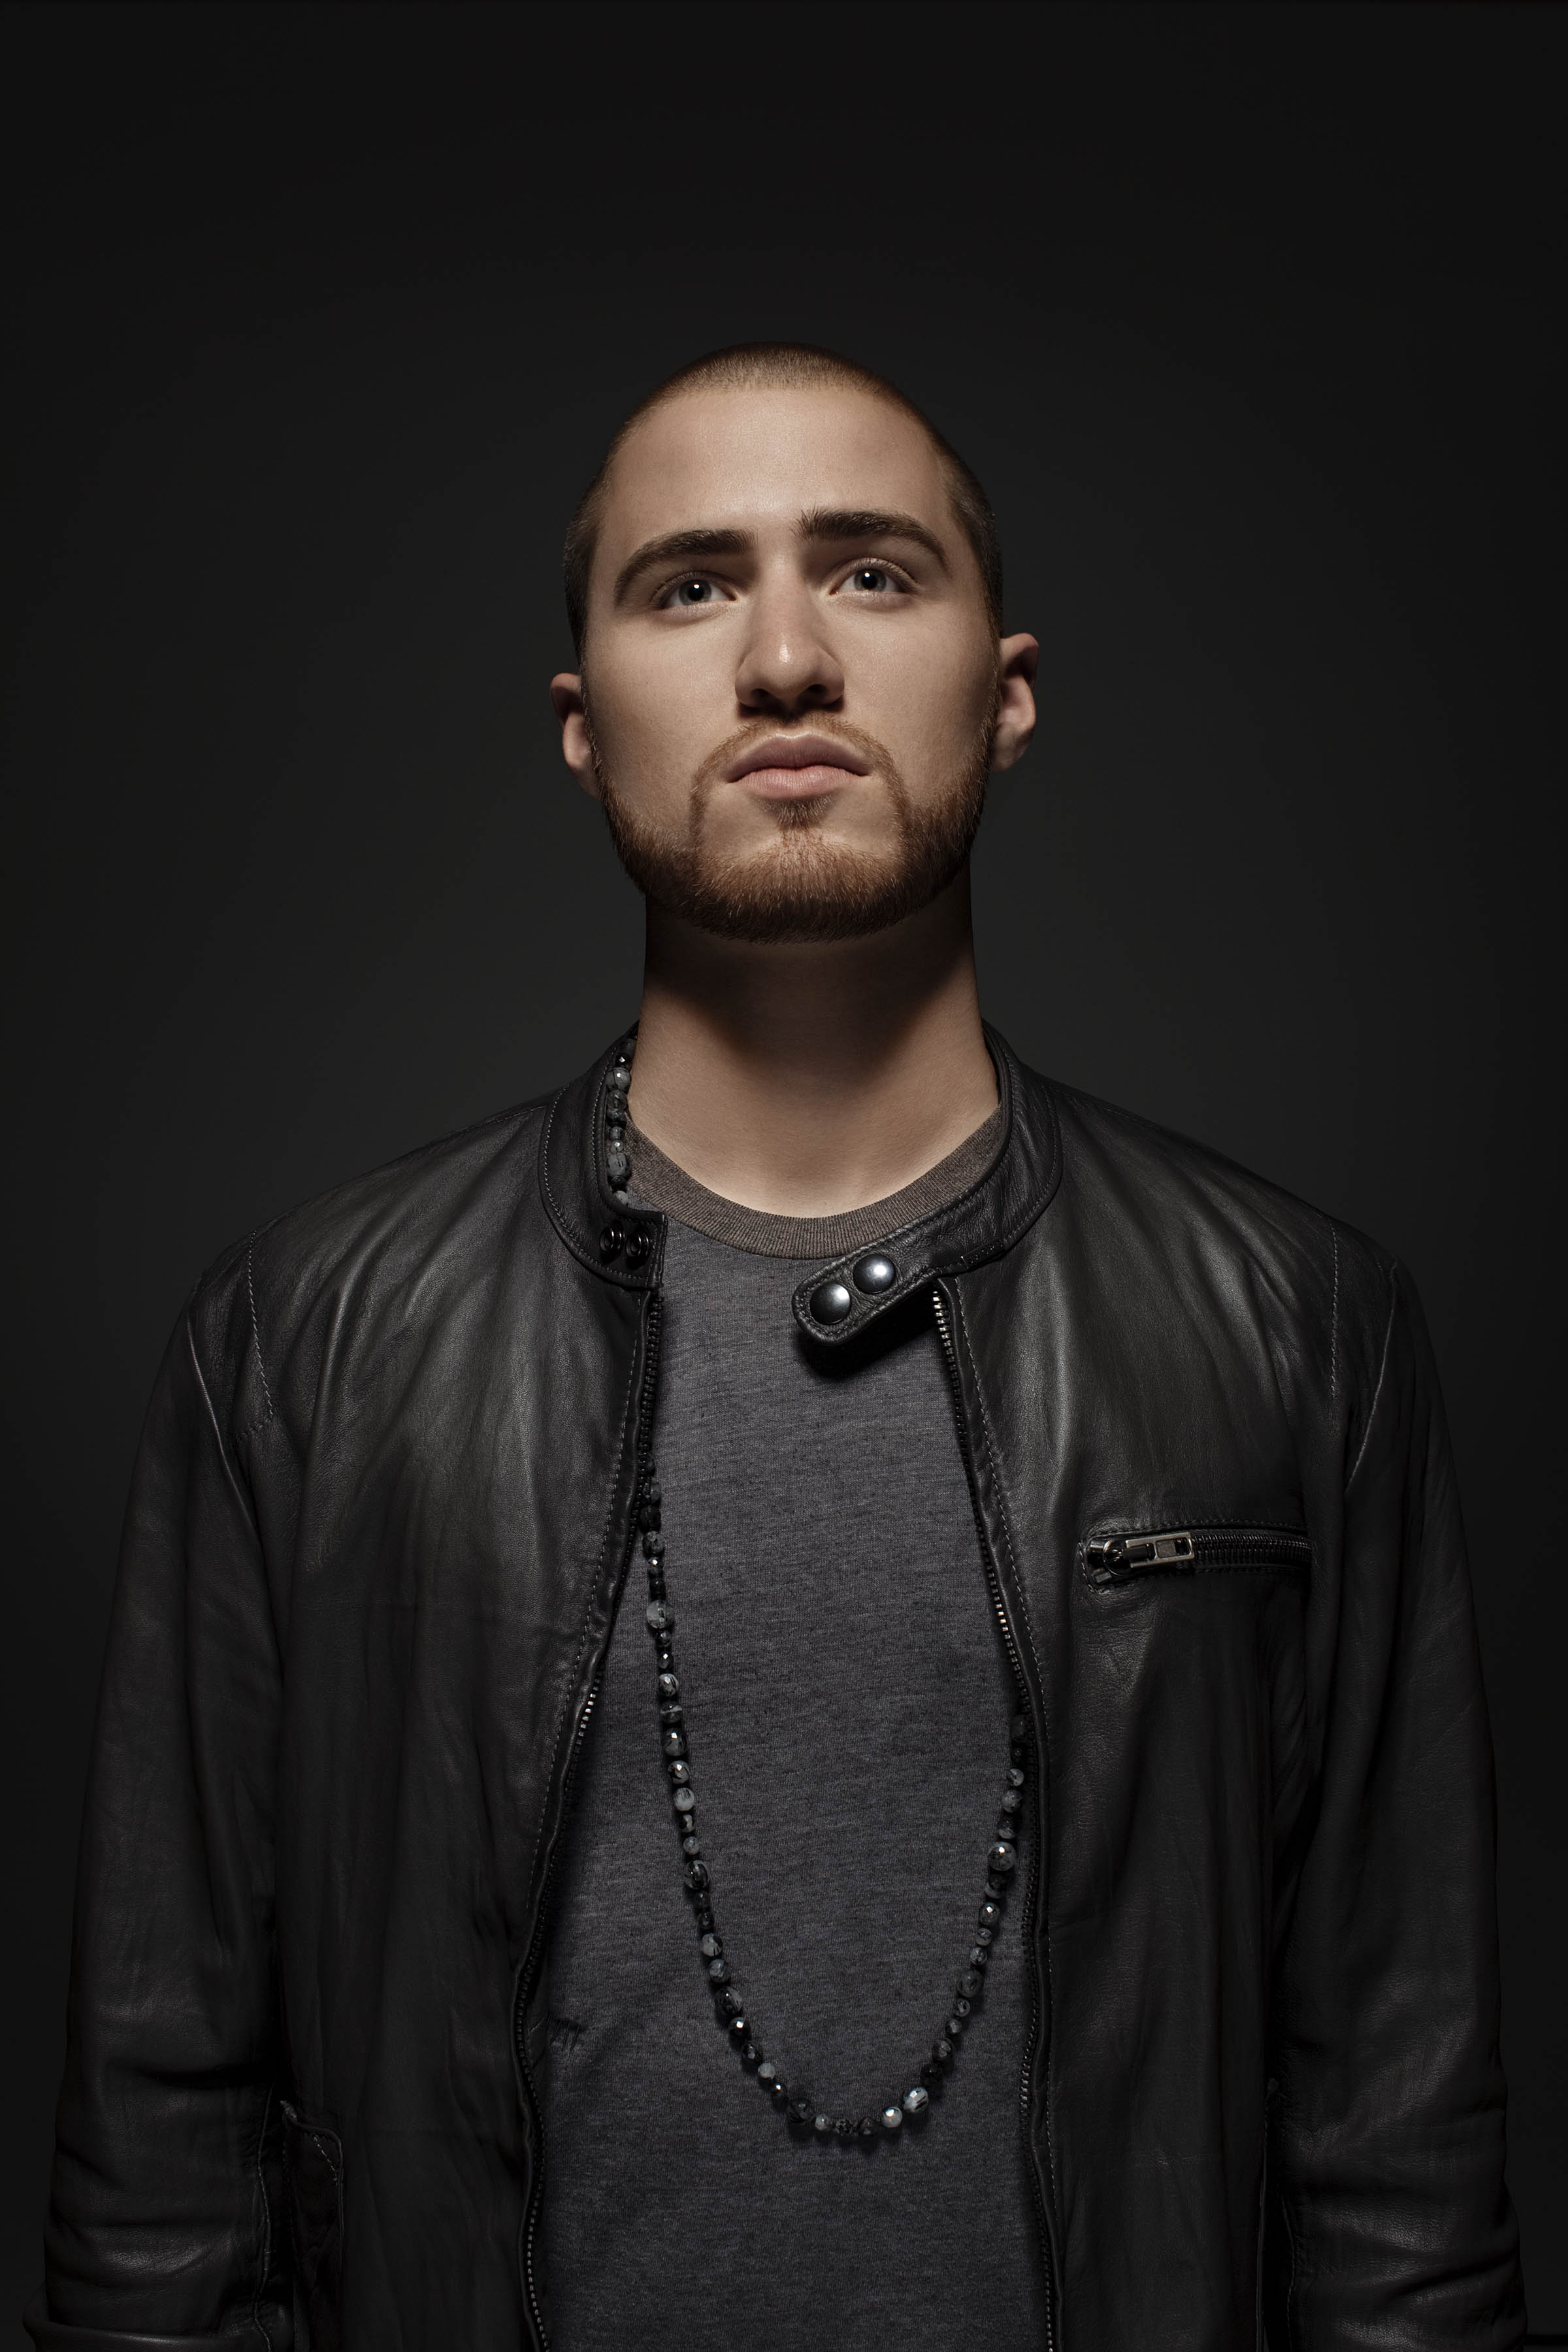 Mike Posner photo, pics, wallpaper - photo #